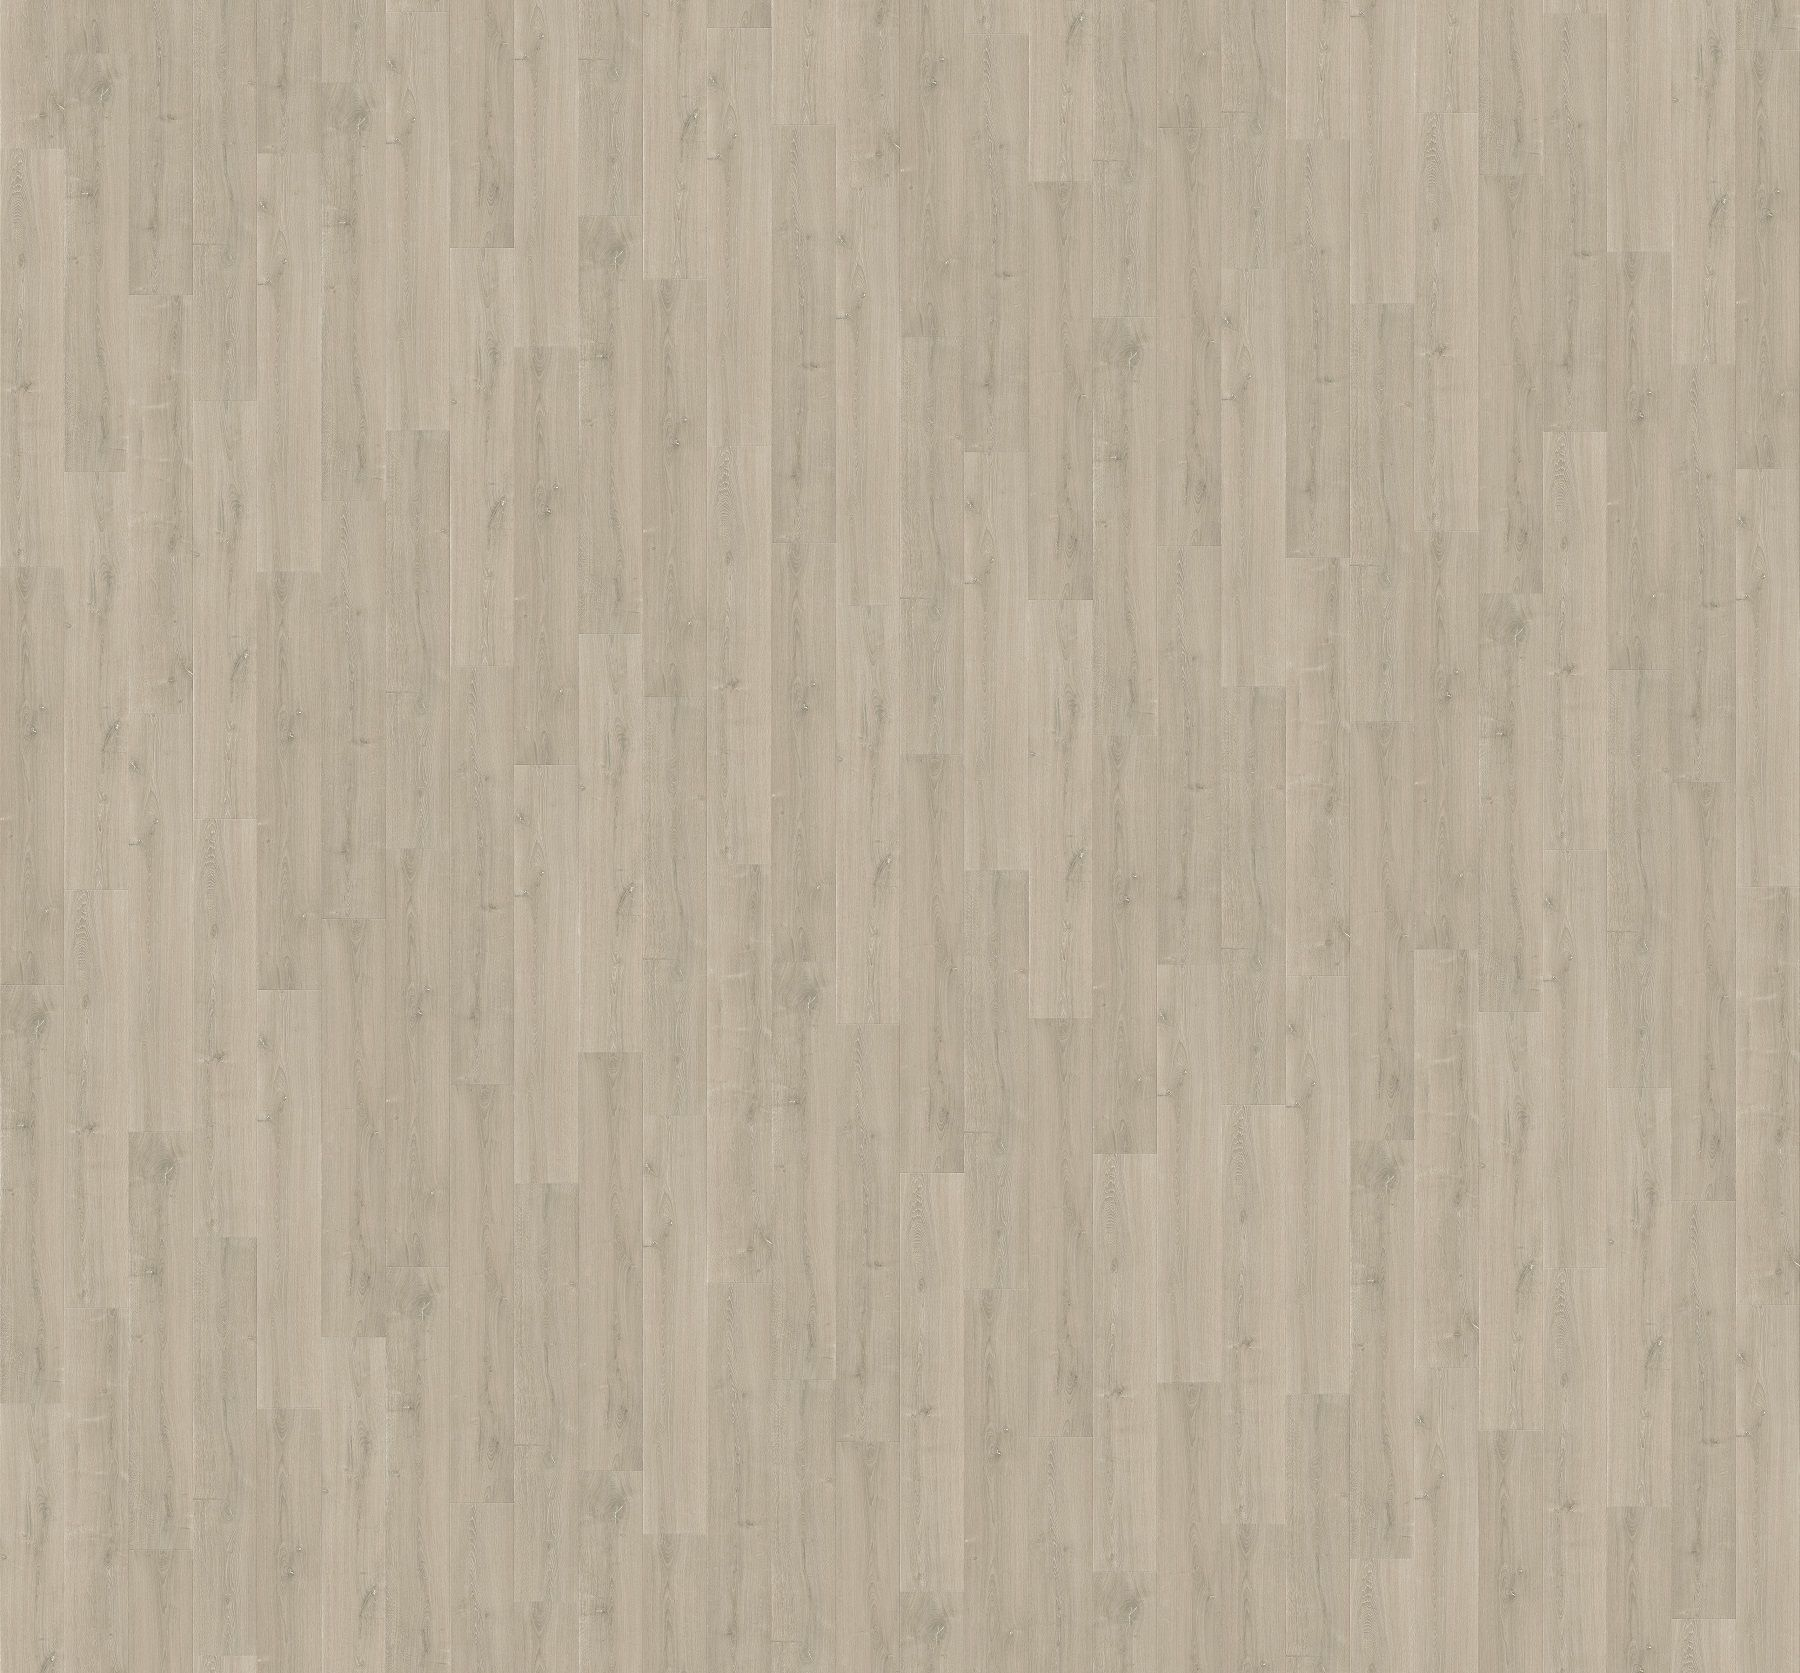 Parchet laminat Quick Step Signature 9 mm 4764 Stejar periat, nuanta bej imagine